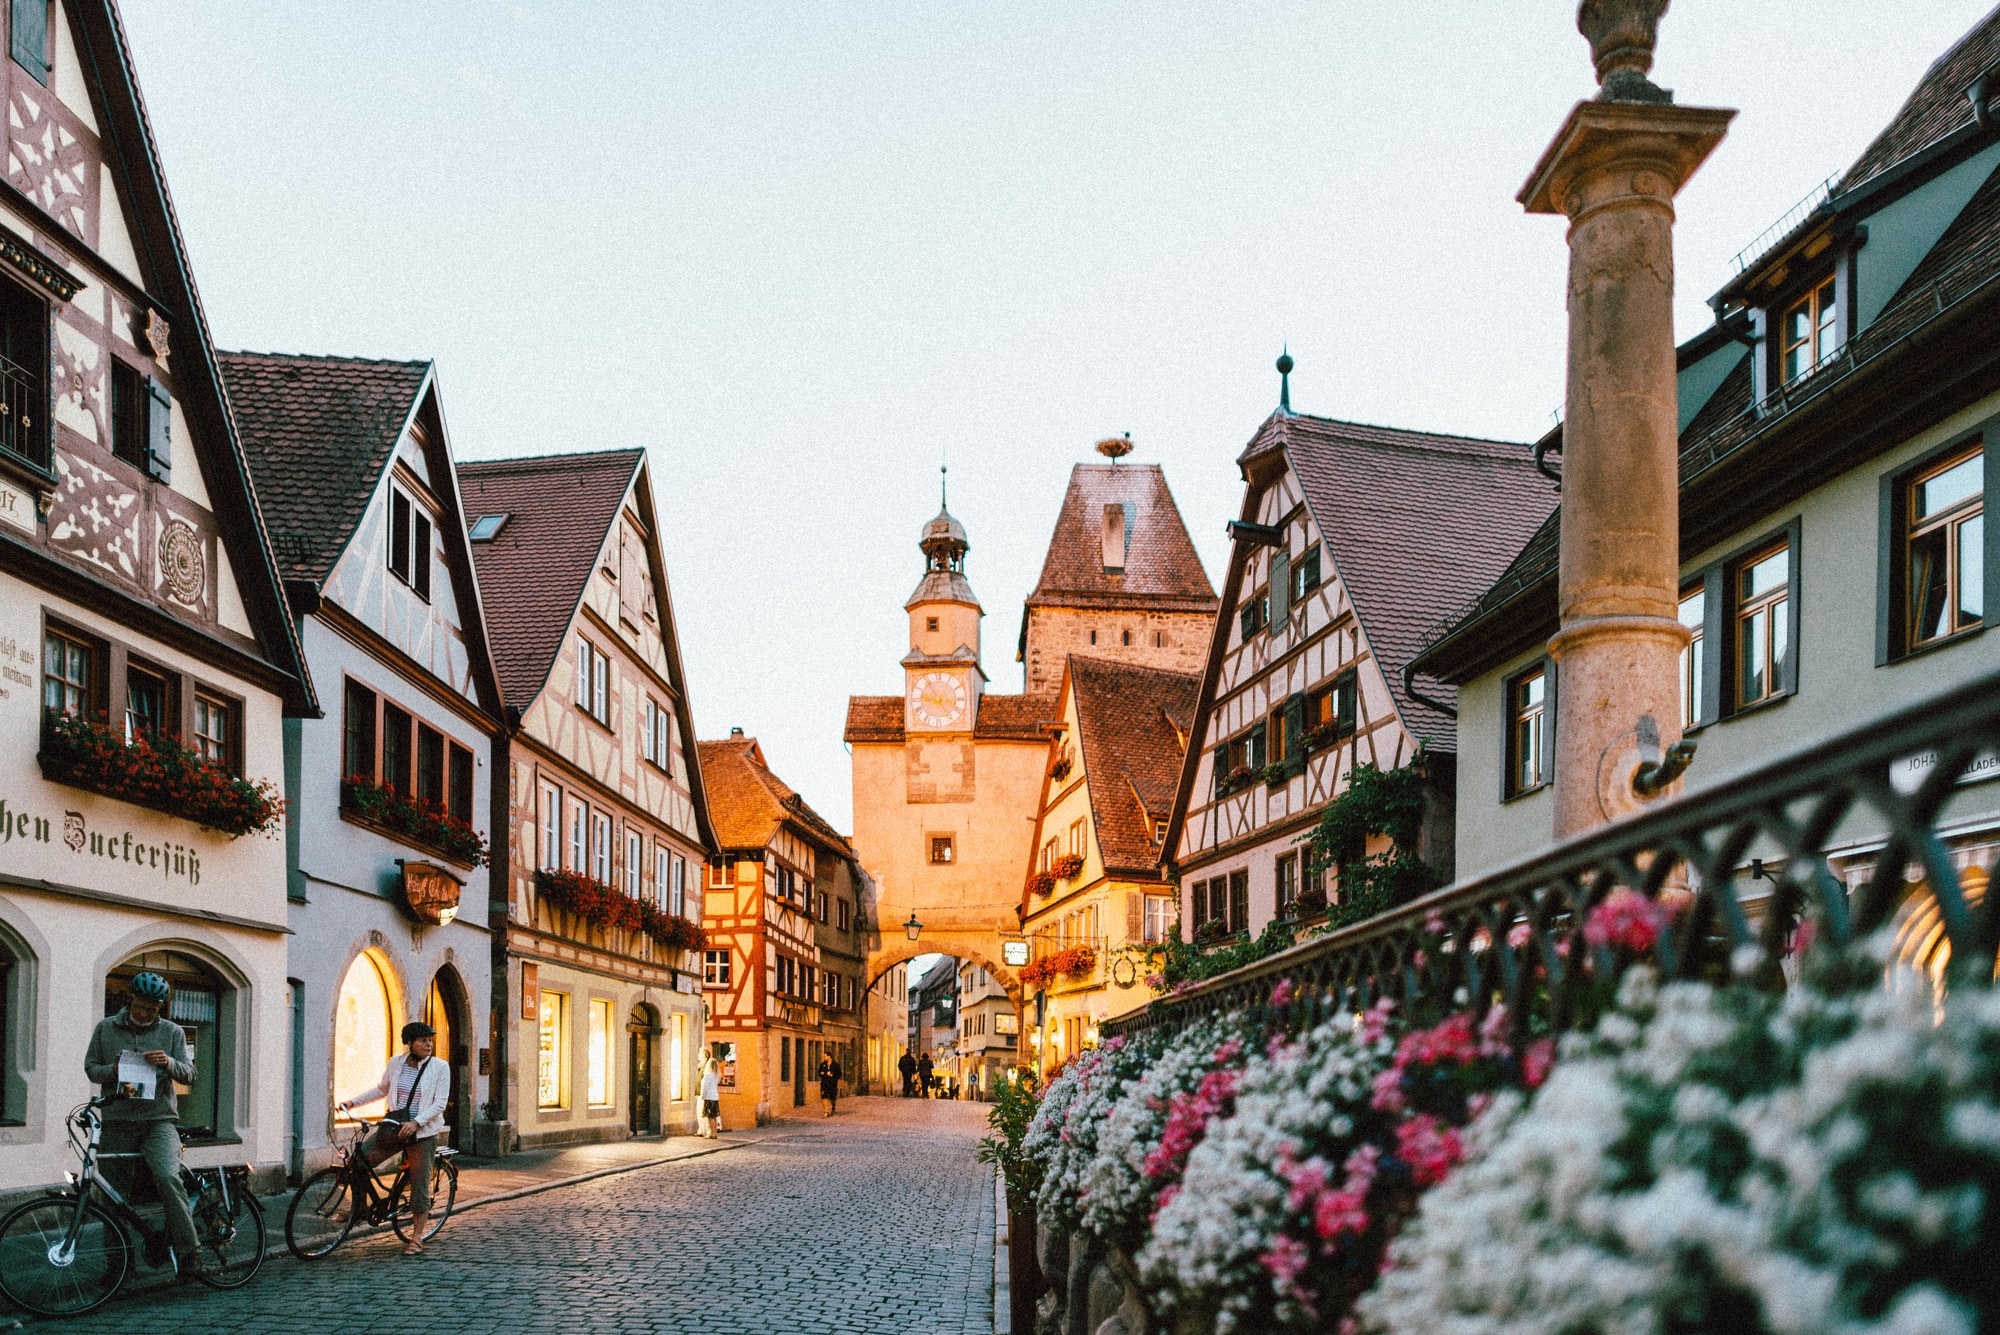 Cheapest Shipping Option from the USA to German village